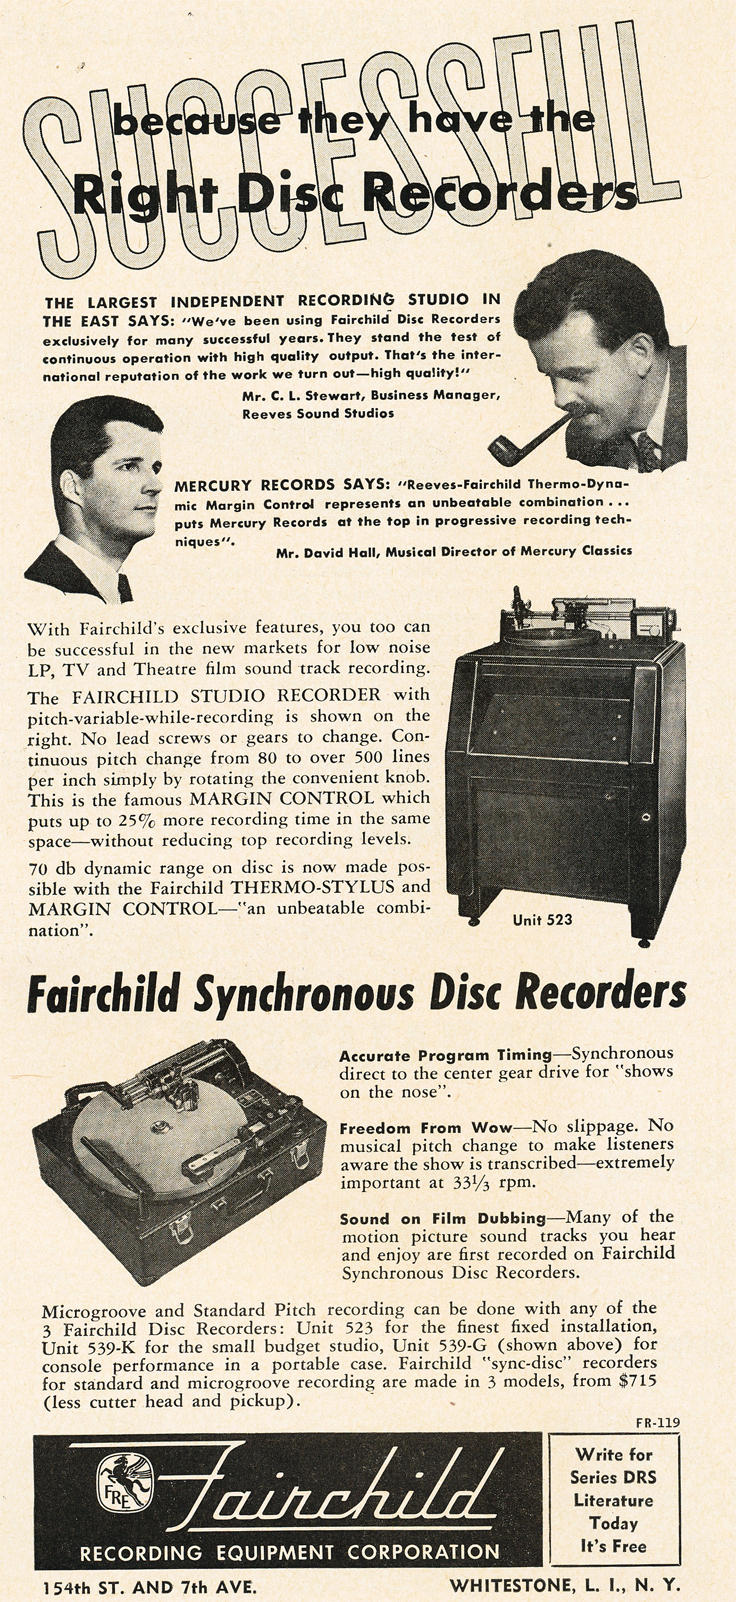 1950 ad for Fairchild professional disk cutters in Reel2ReelTexas.com's vintage recording collection